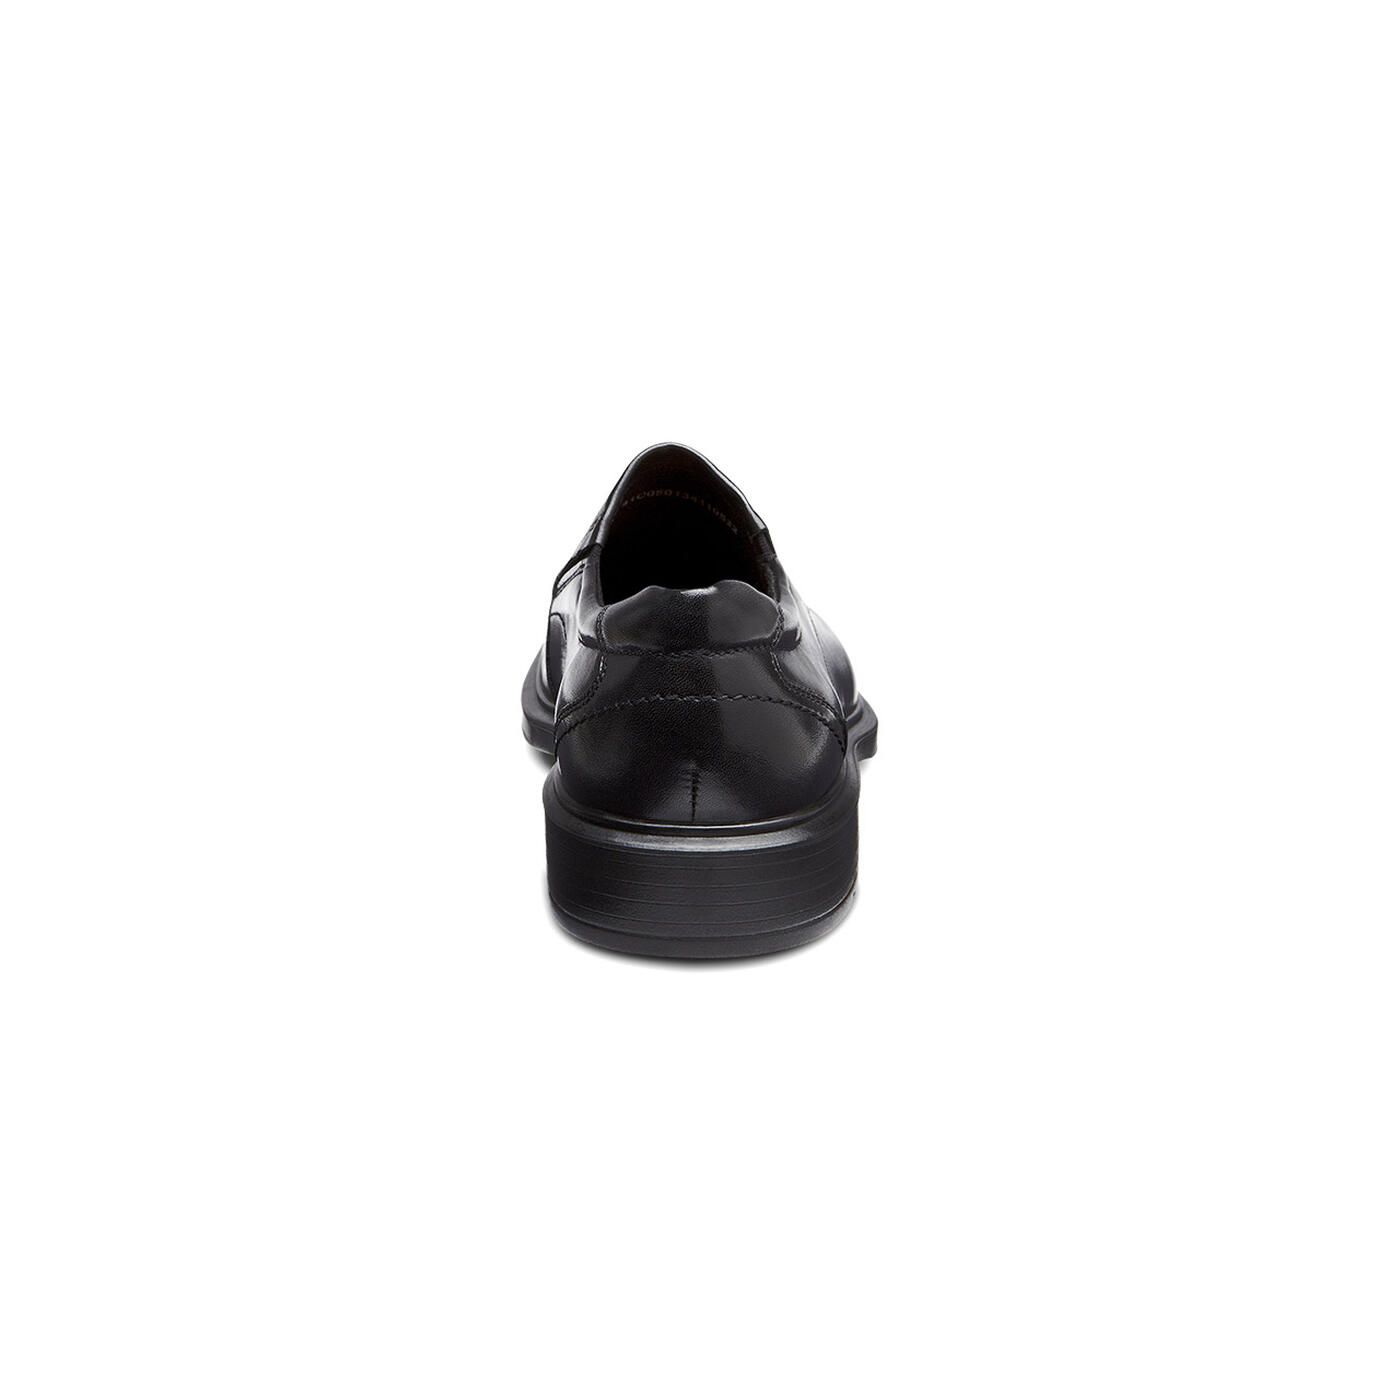 ECCO Helsinki Men's Bike Toe Slip-On